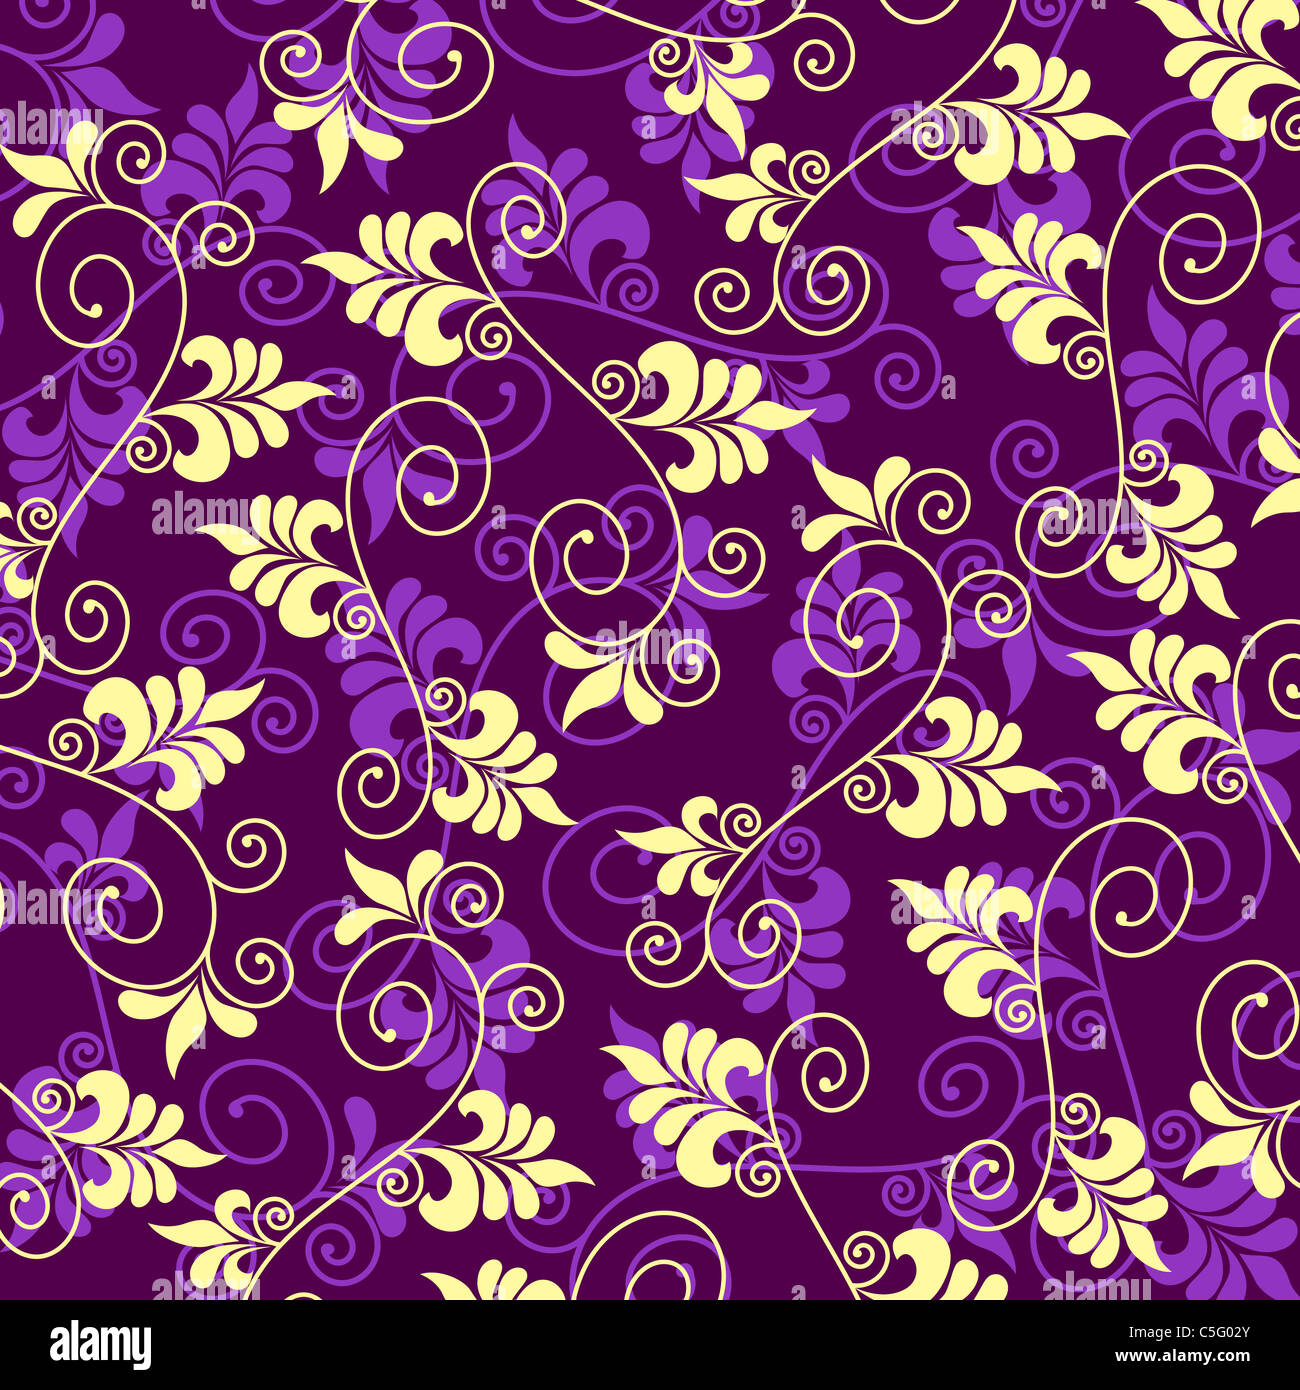 old wedding stationery wallpaper yellow purple high resolution stock photography and images alamy https www alamy com stock photo vintage pattern background illustration exclusive to alamy only 37845331 html